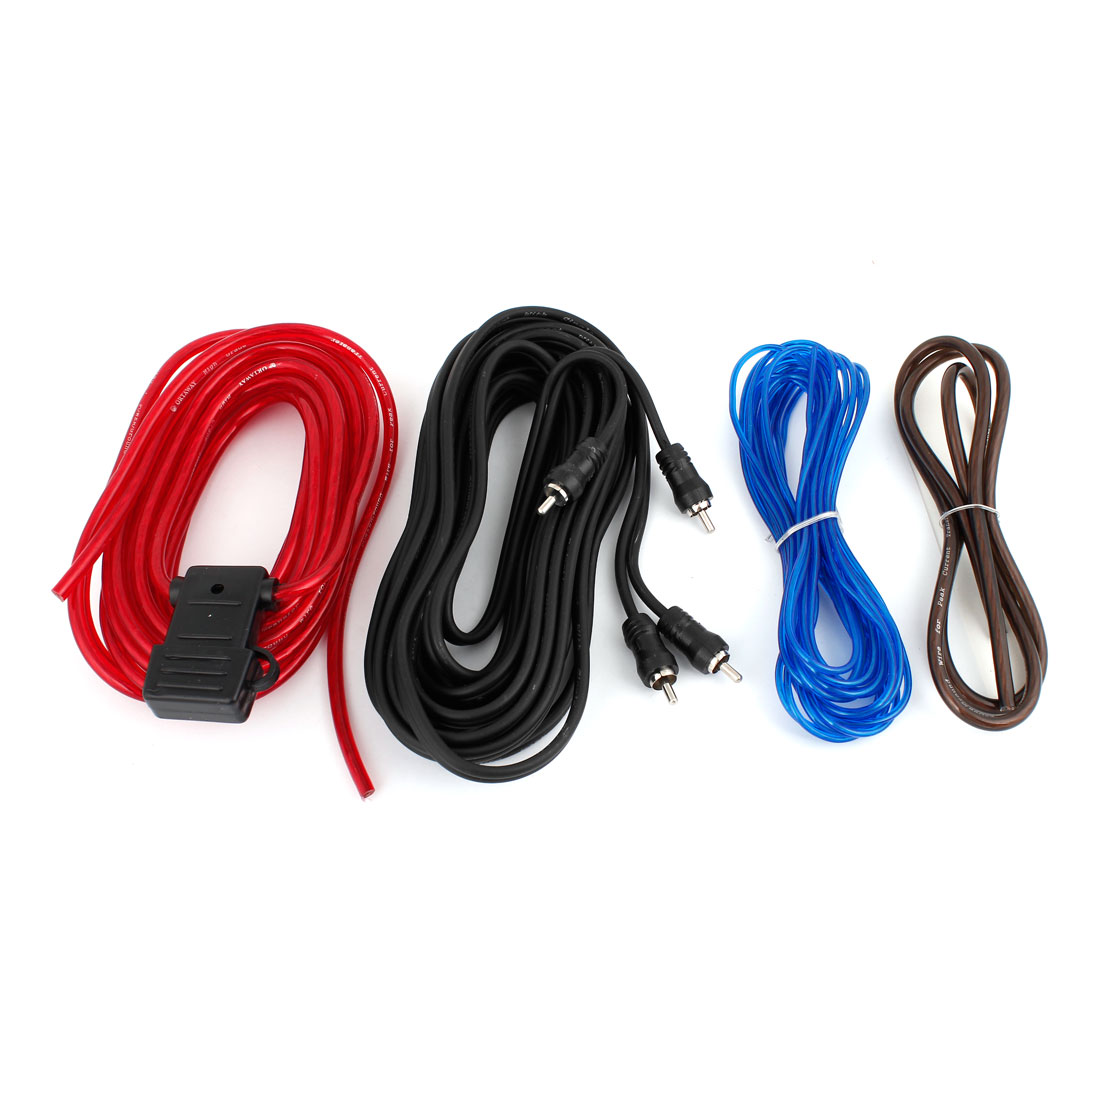 Van Car Truck Amplifier RCA Audio Speaker Wiring Cable Wires Kits